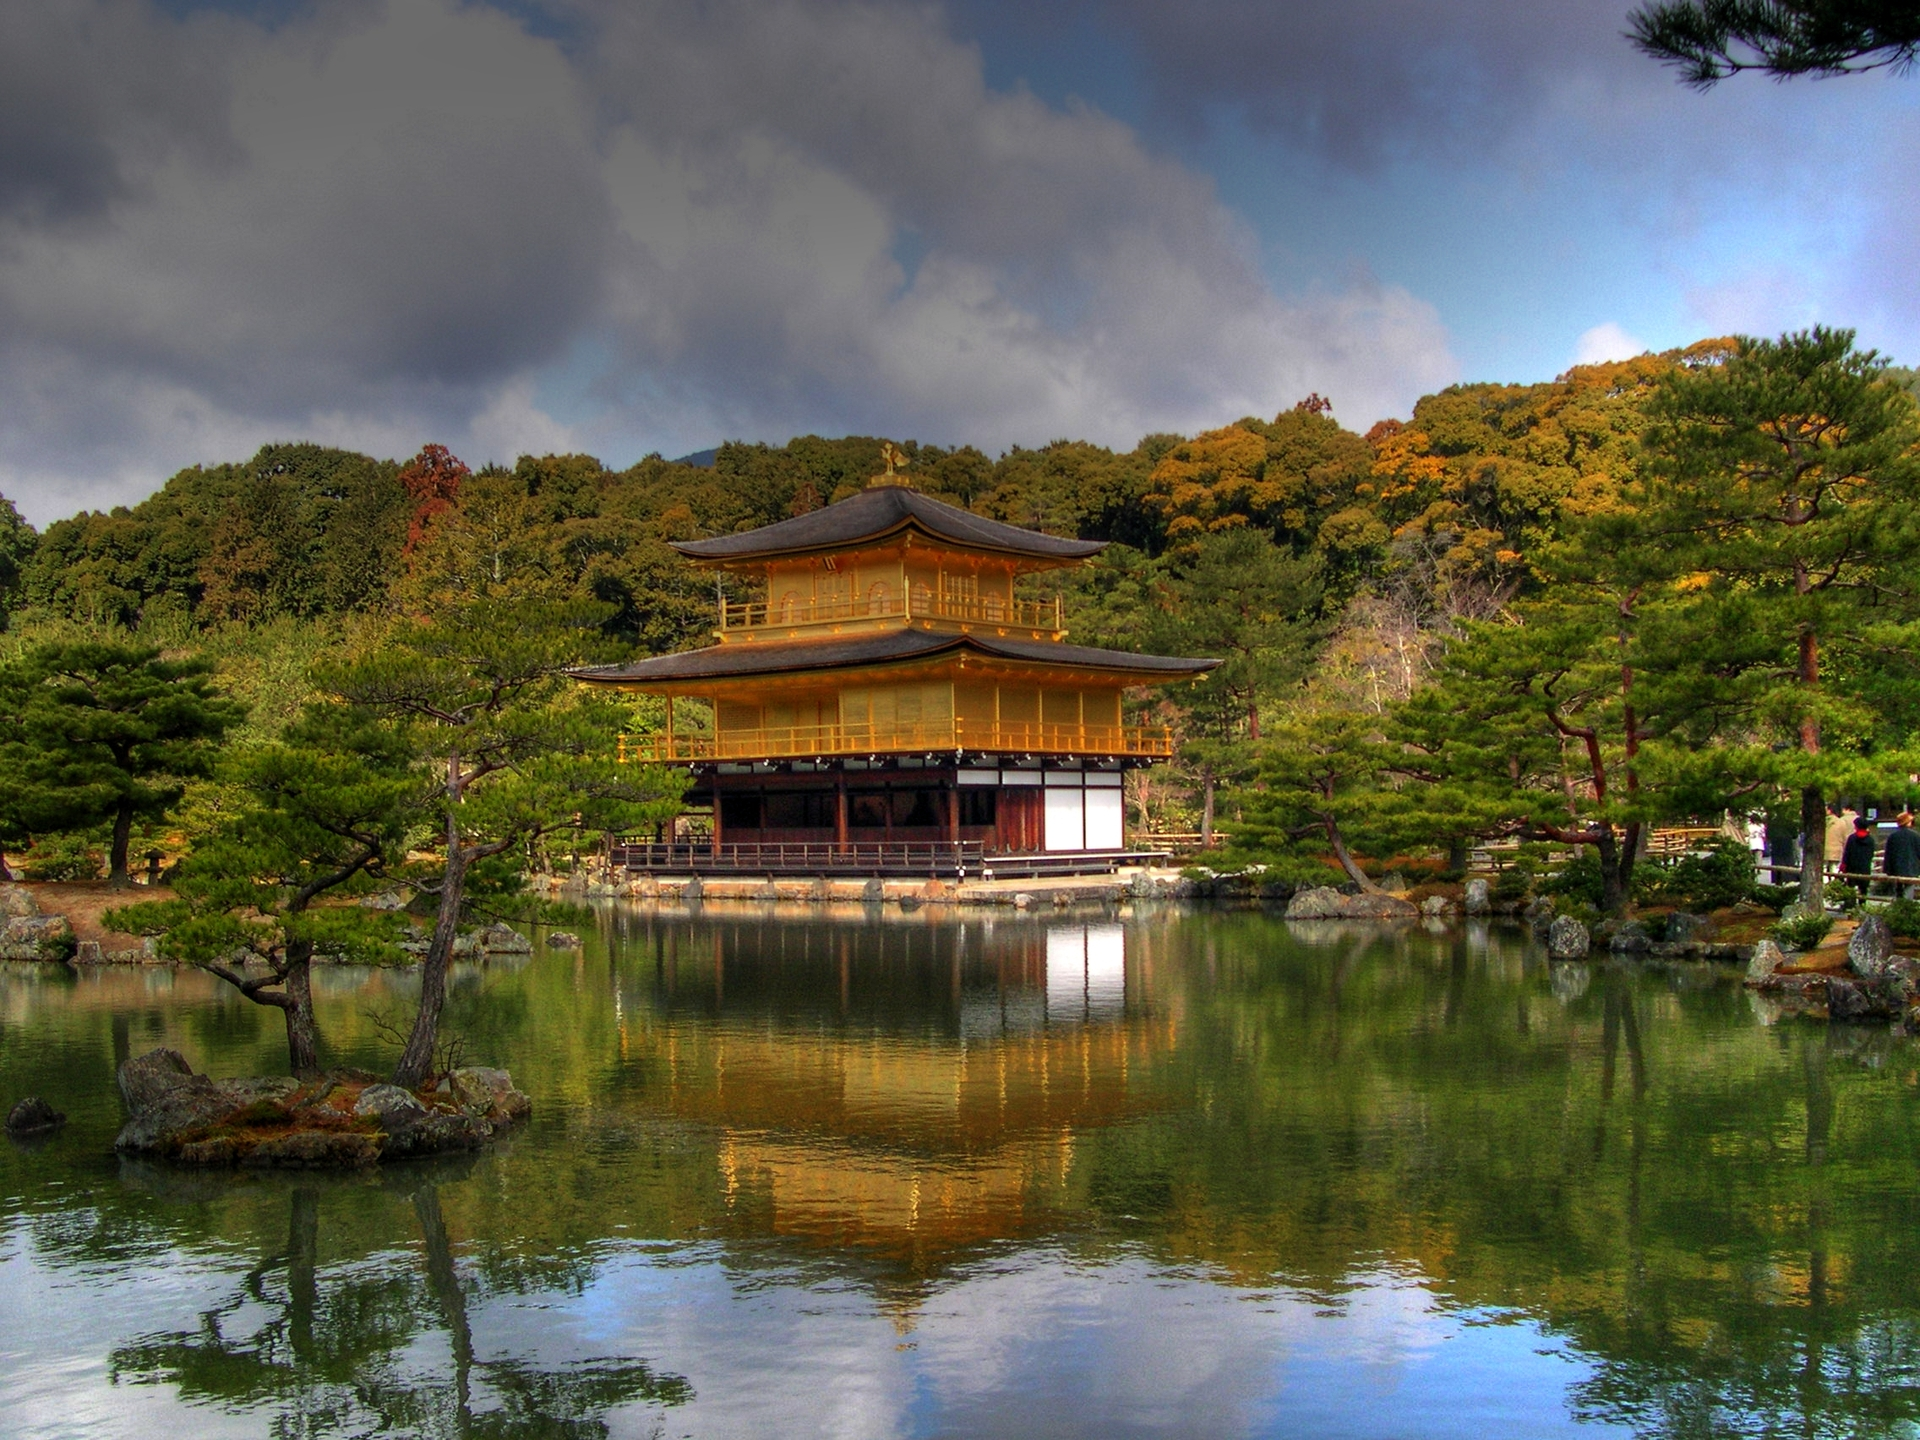 Japan images JAPAN LANDSCAPE HD wallpaper and background 1920x1440